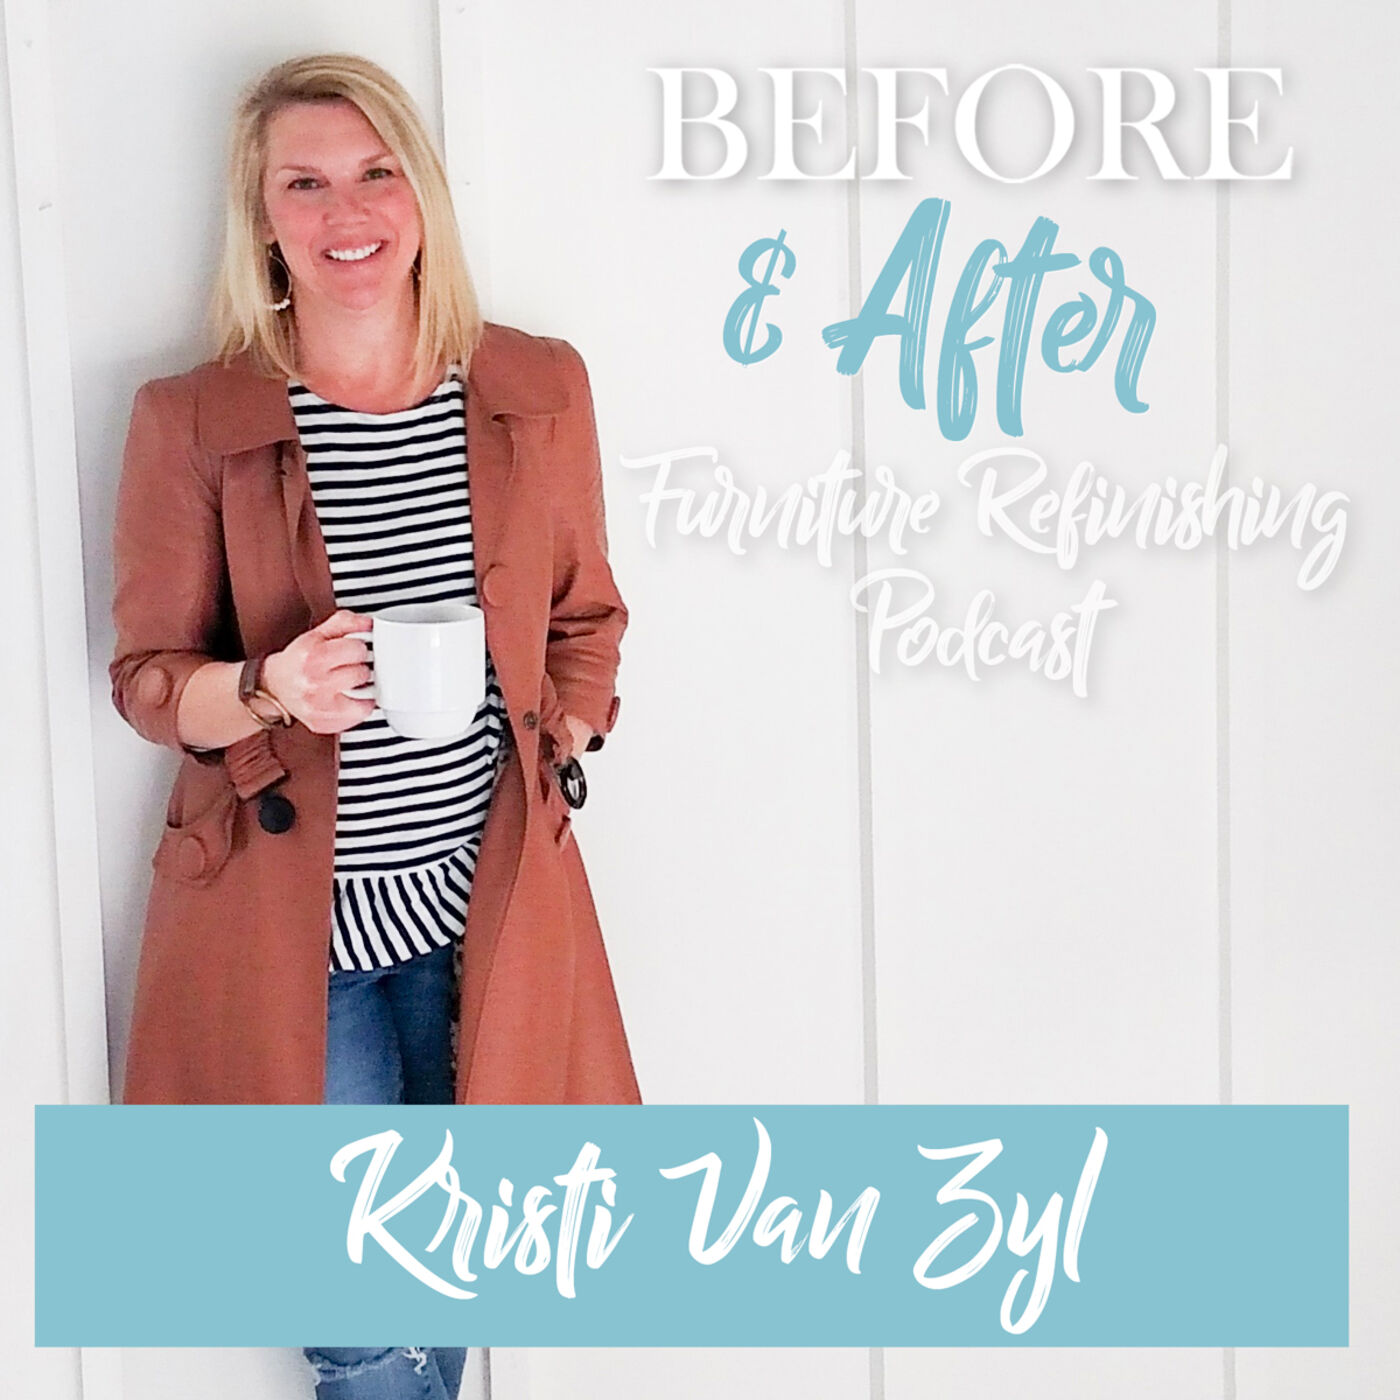 How to choose the right type of paint for your furniture refinishing projects: An interview with Kristi Van Zyl of Chalk It Up, LLC.